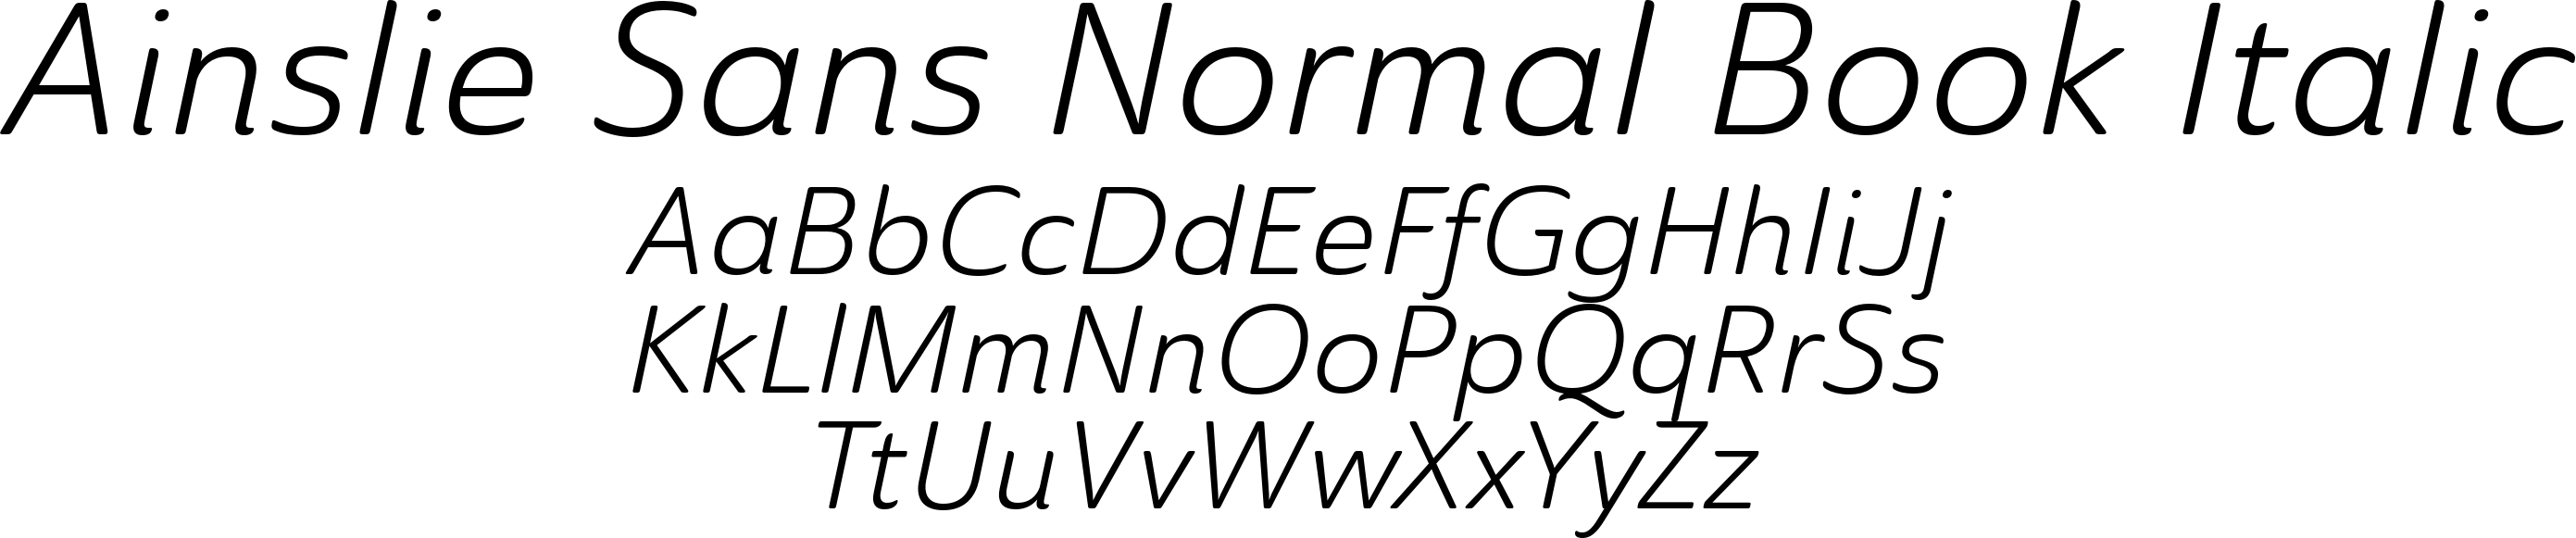 Ainslie Sans Normal Book Italic